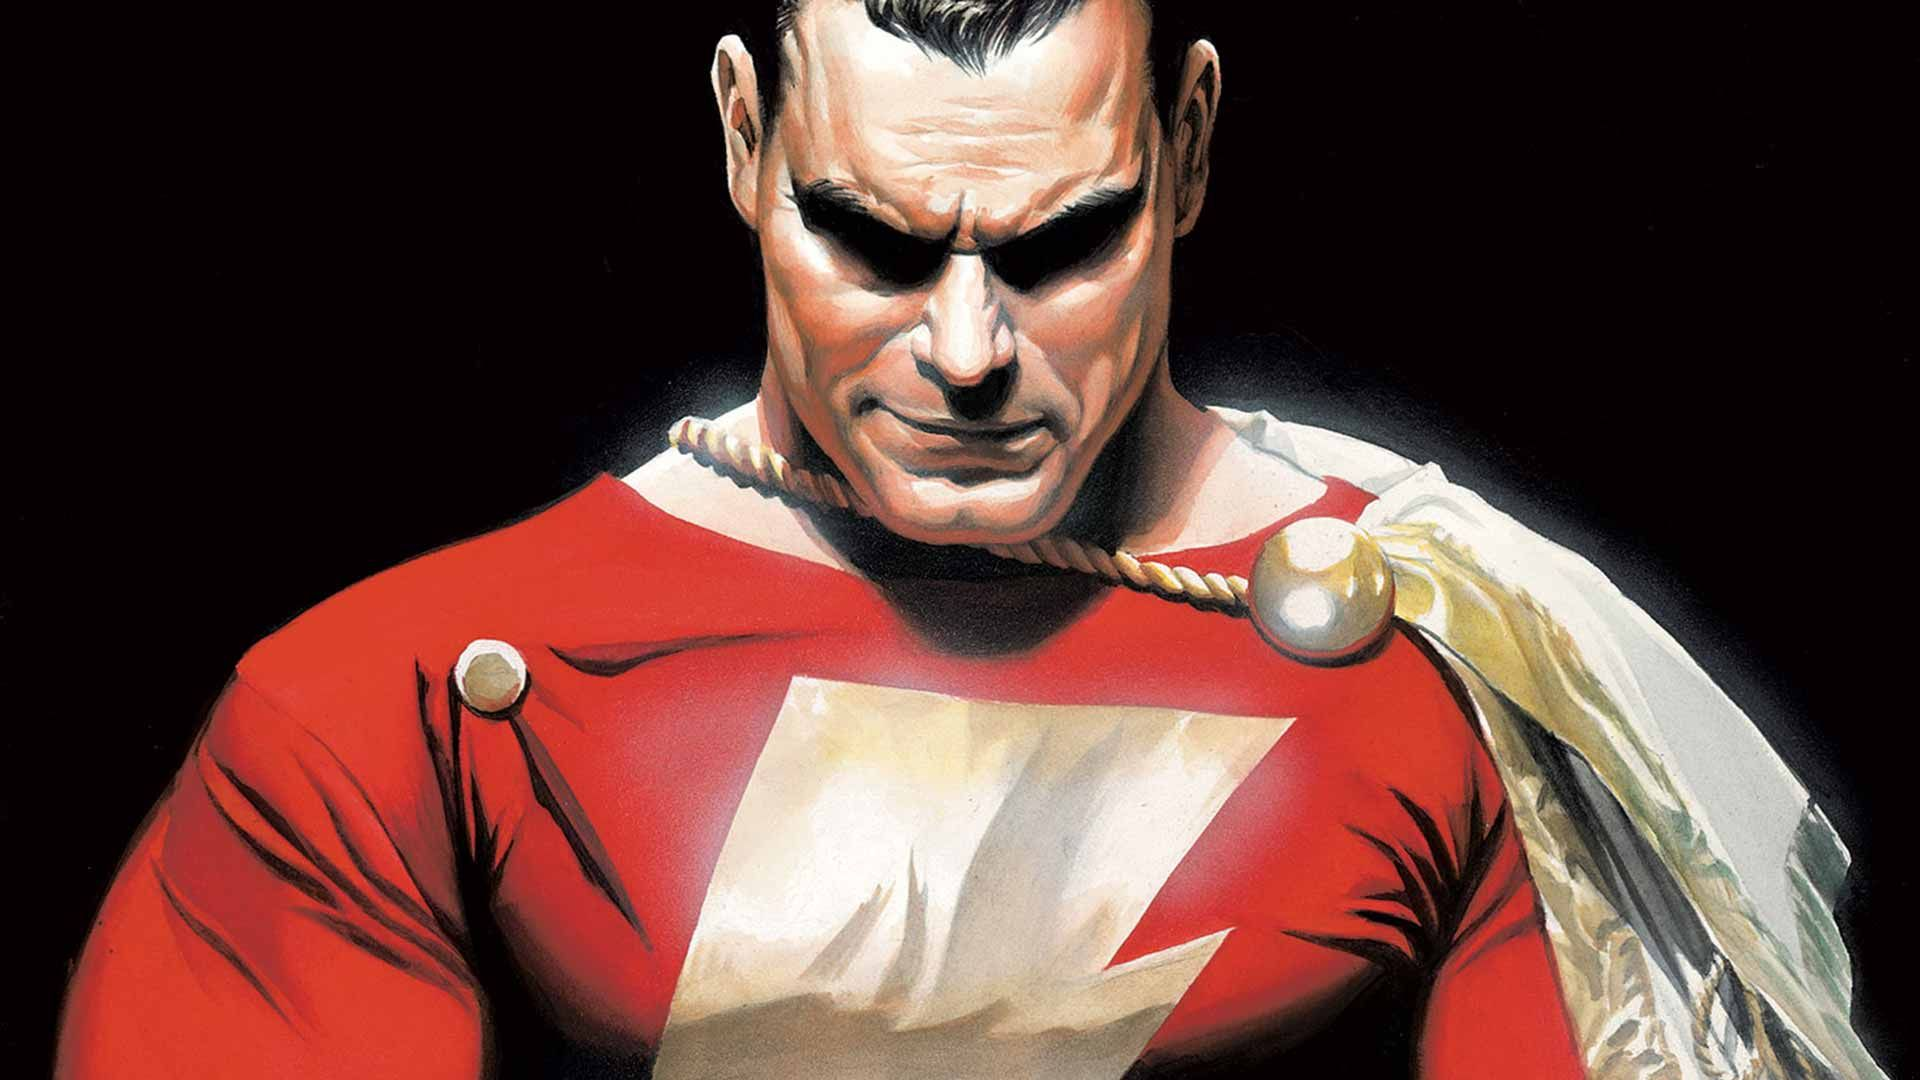 Exclusive: How 'Shazam!' Movie Will Build on Warner Bros